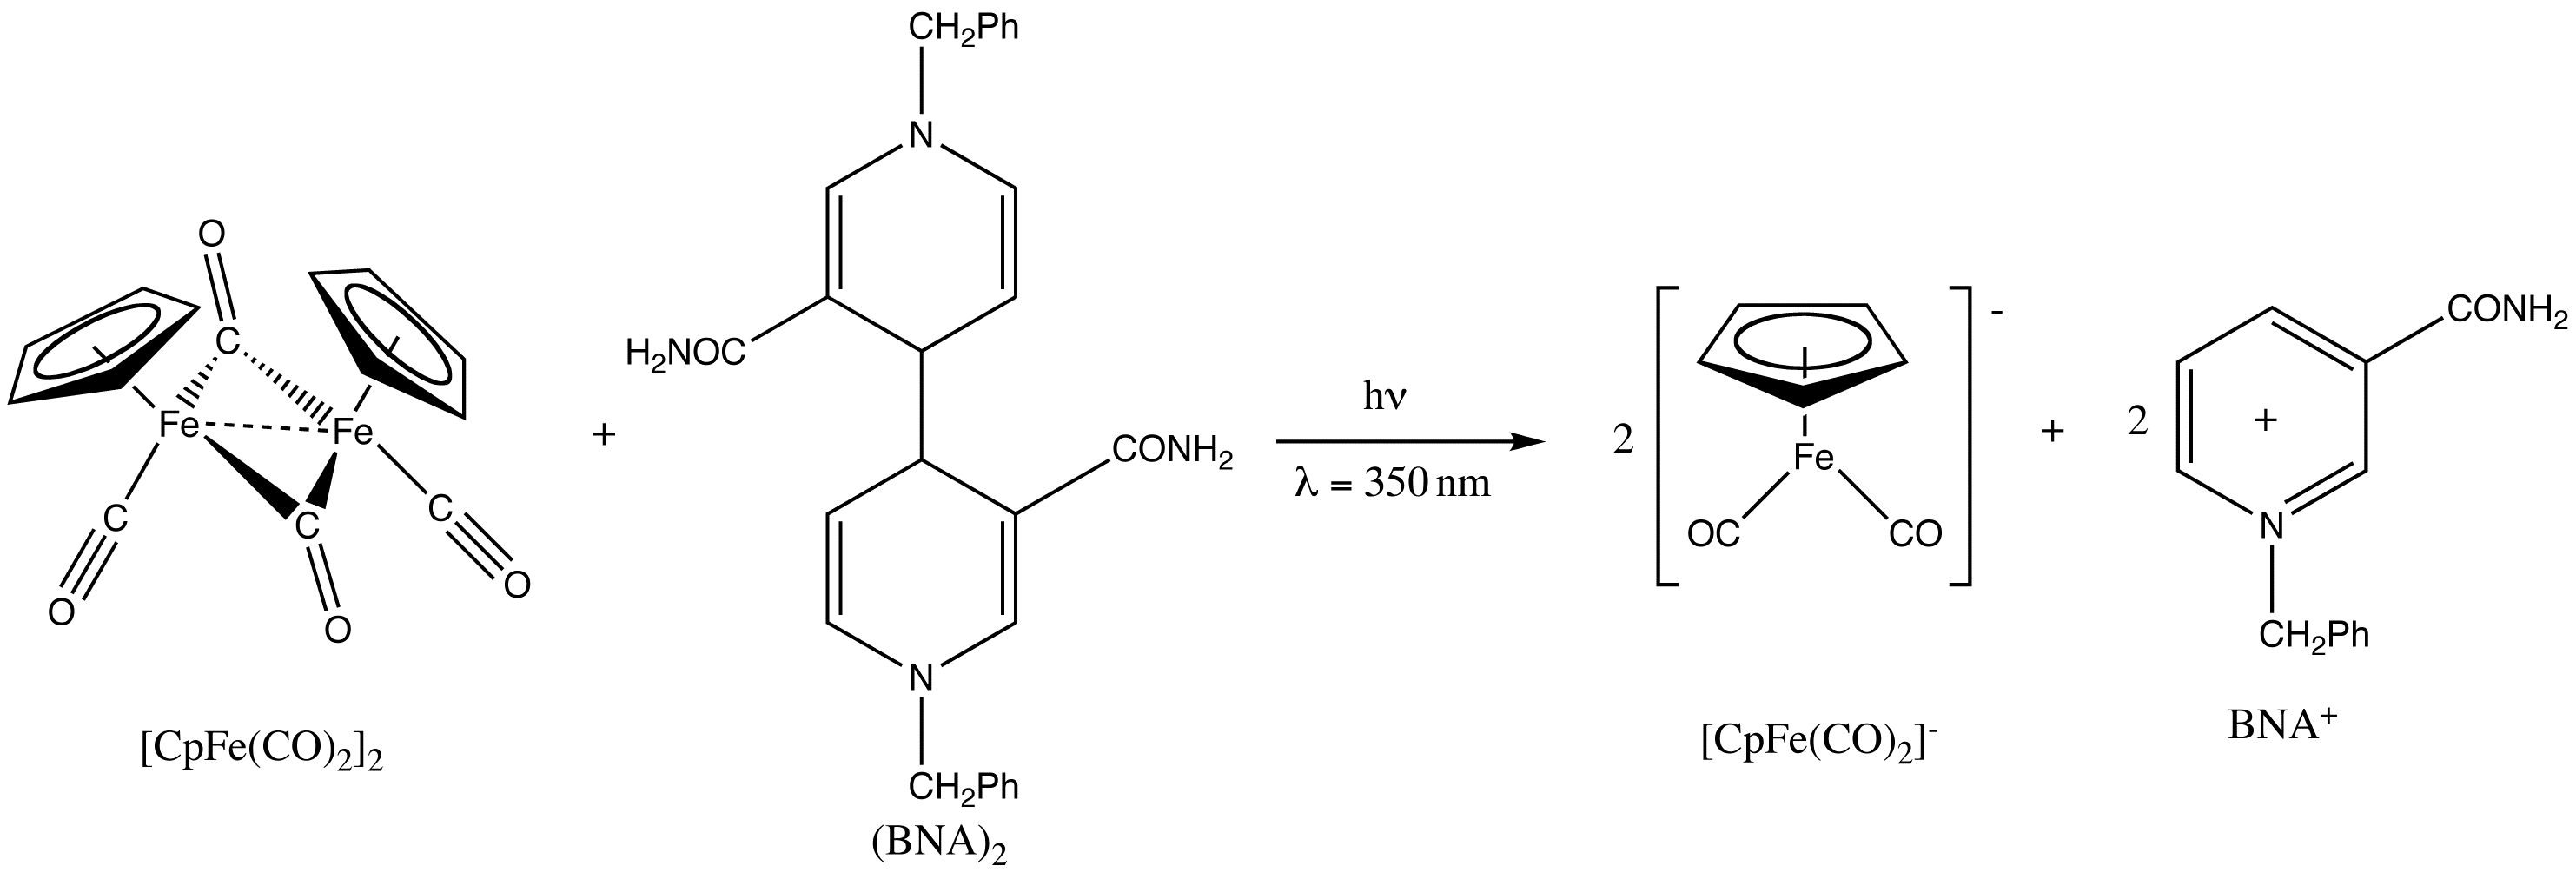 File:1-benzyl-1,4-dihydronicotinamide dimer.png